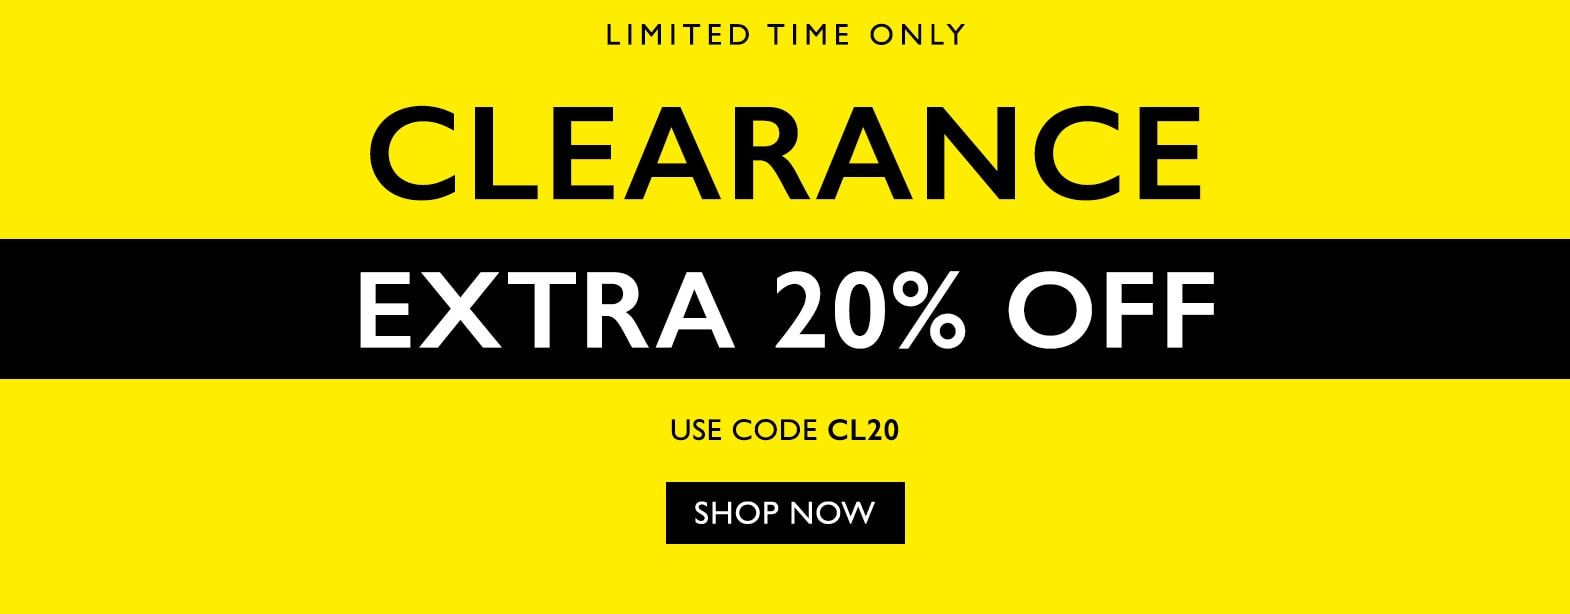 Moss Bros: extra 20% off suits, tailoring, shirts, shoes, coats and accessories